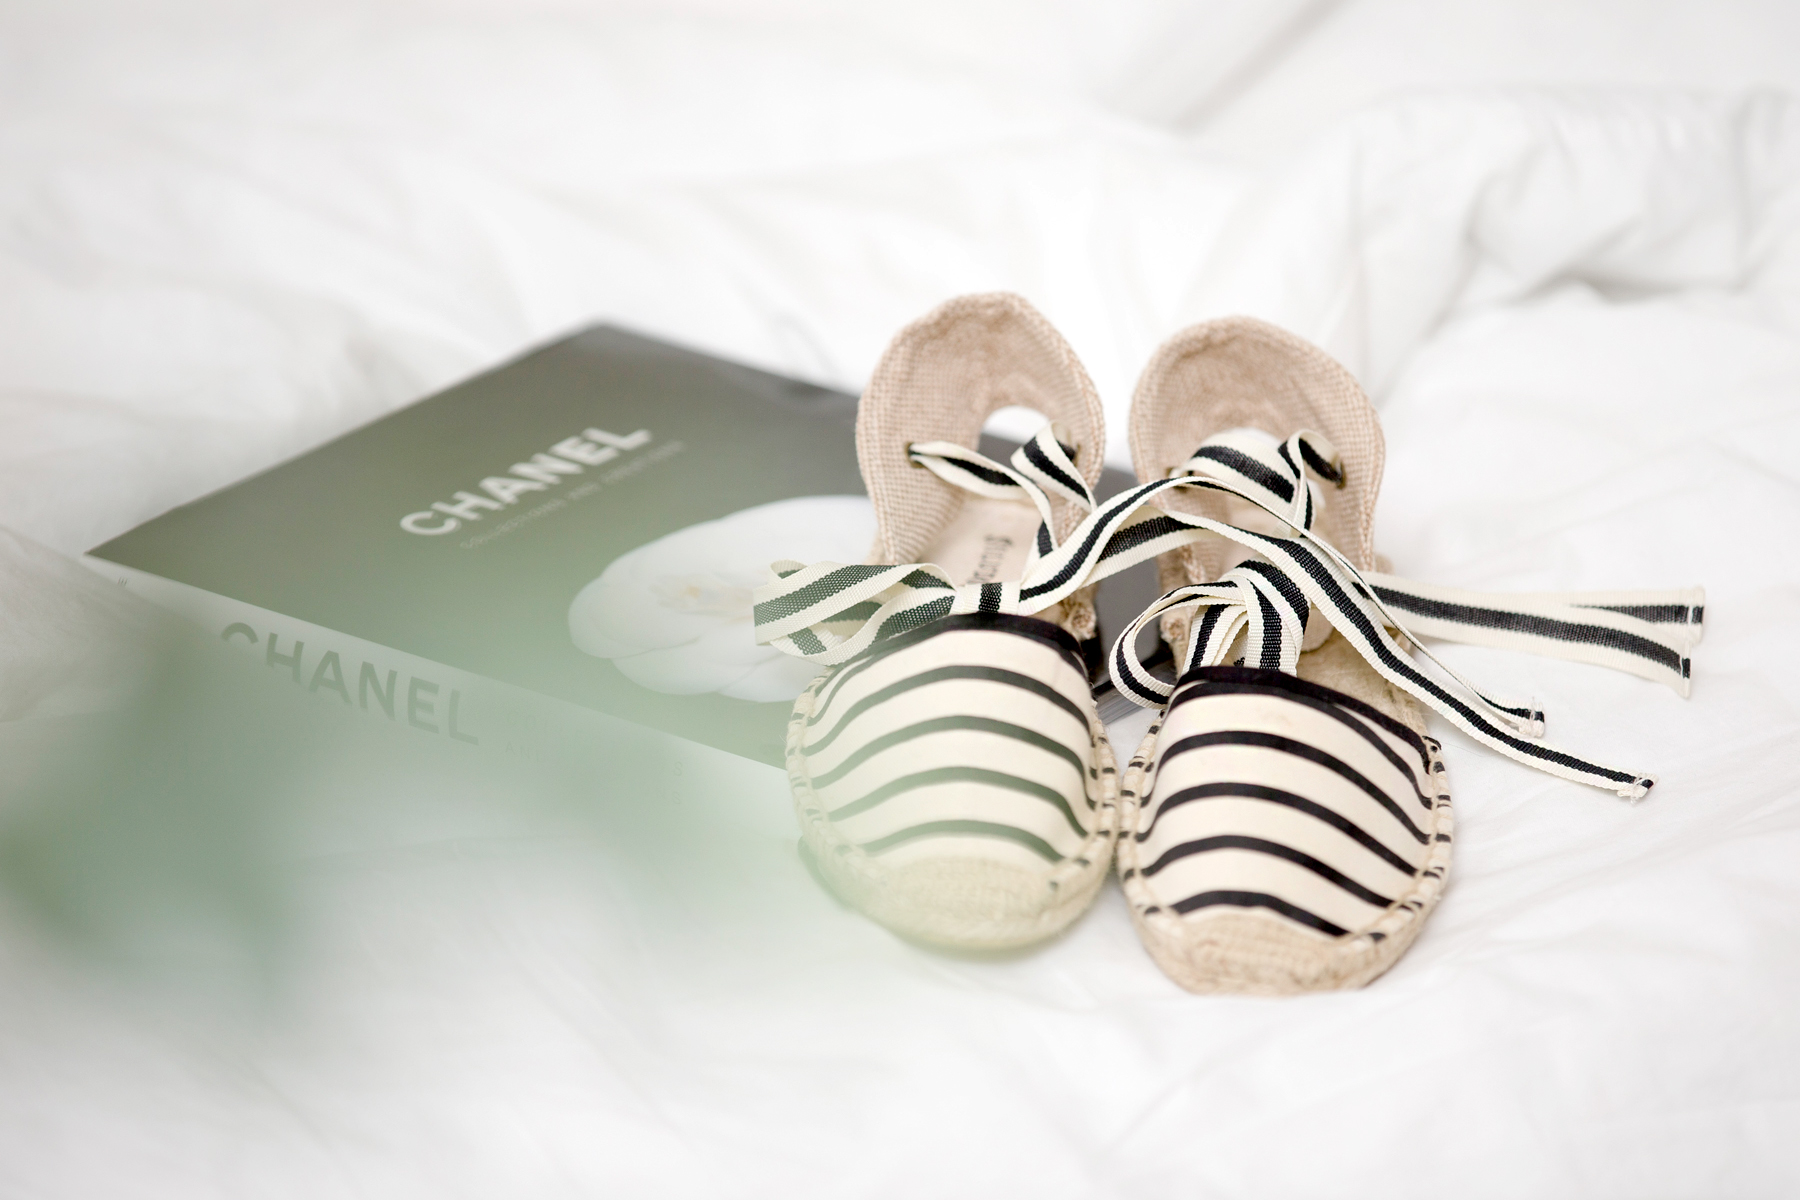 soludos striped espadrilles chanel book camelia reading relax clean white bright girl brunette bangs cats & dogs blog ricarda schernus fashionblogger düsseldorf germany berlin 1